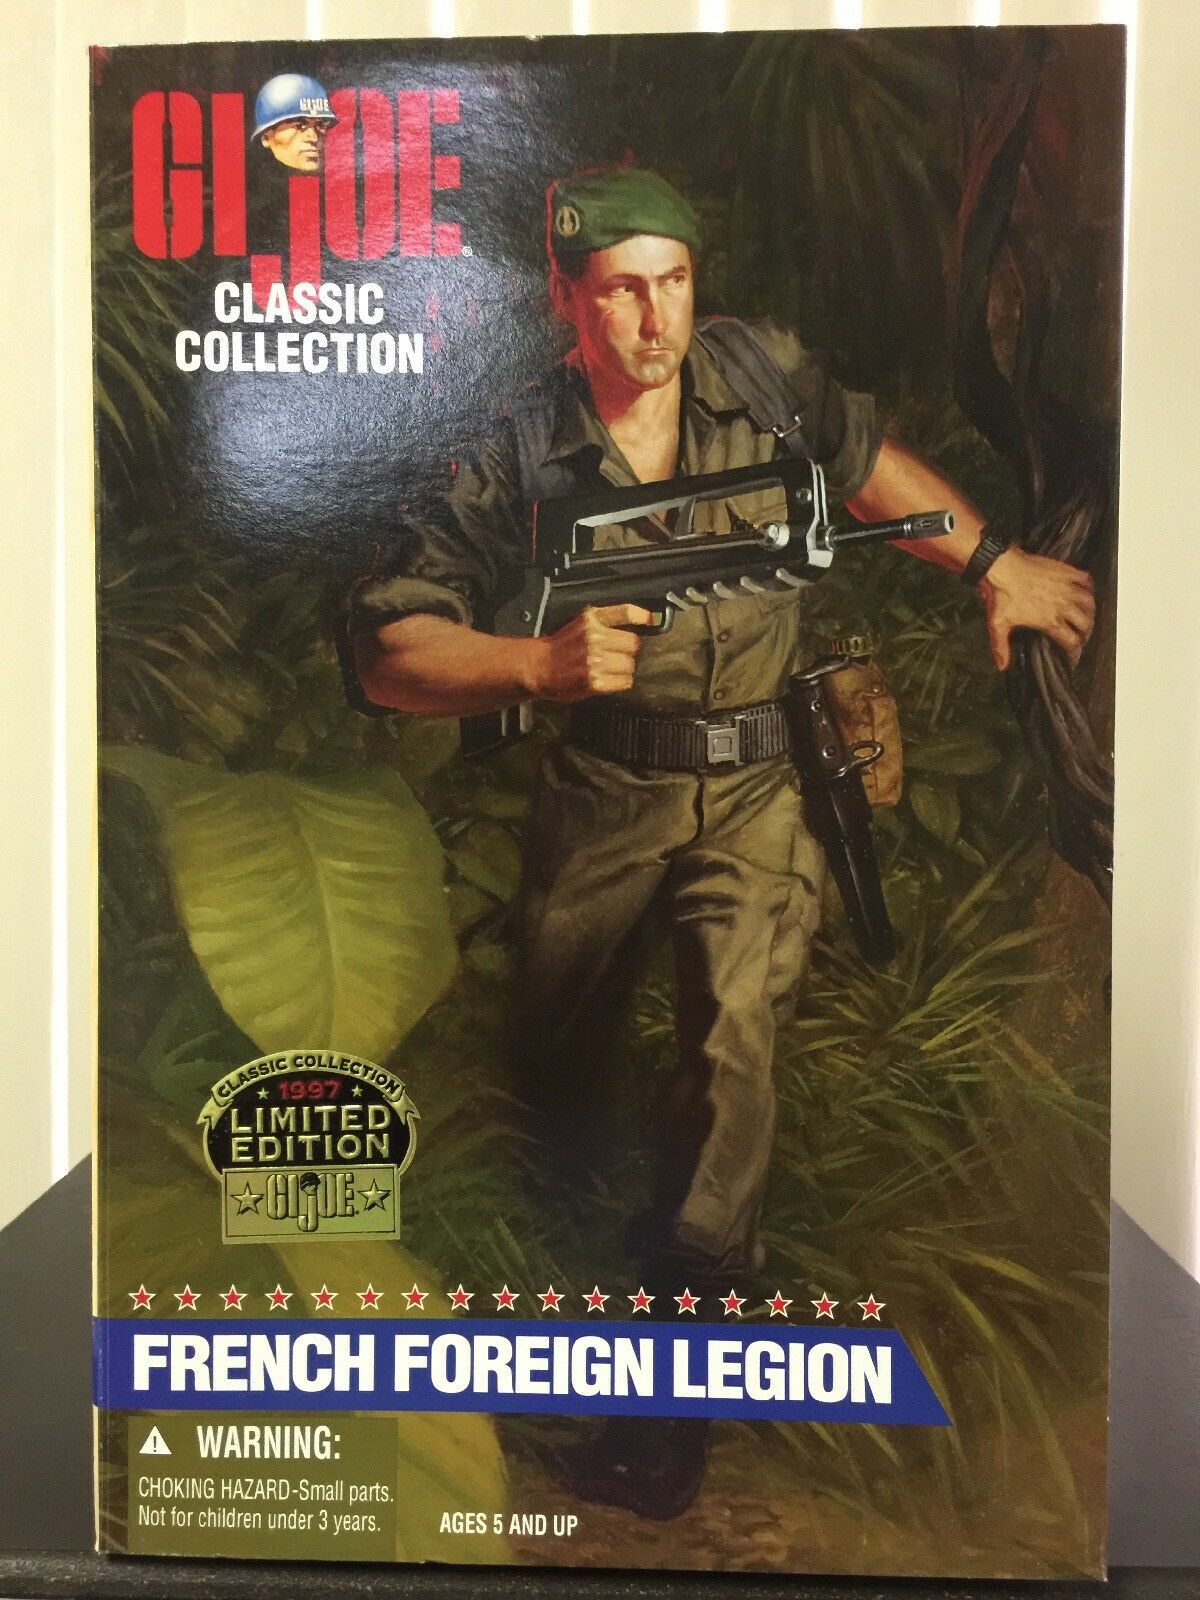 GI JOE FRENCH FOREIGN LEGION - IN EXCELLENT  CONDITION.